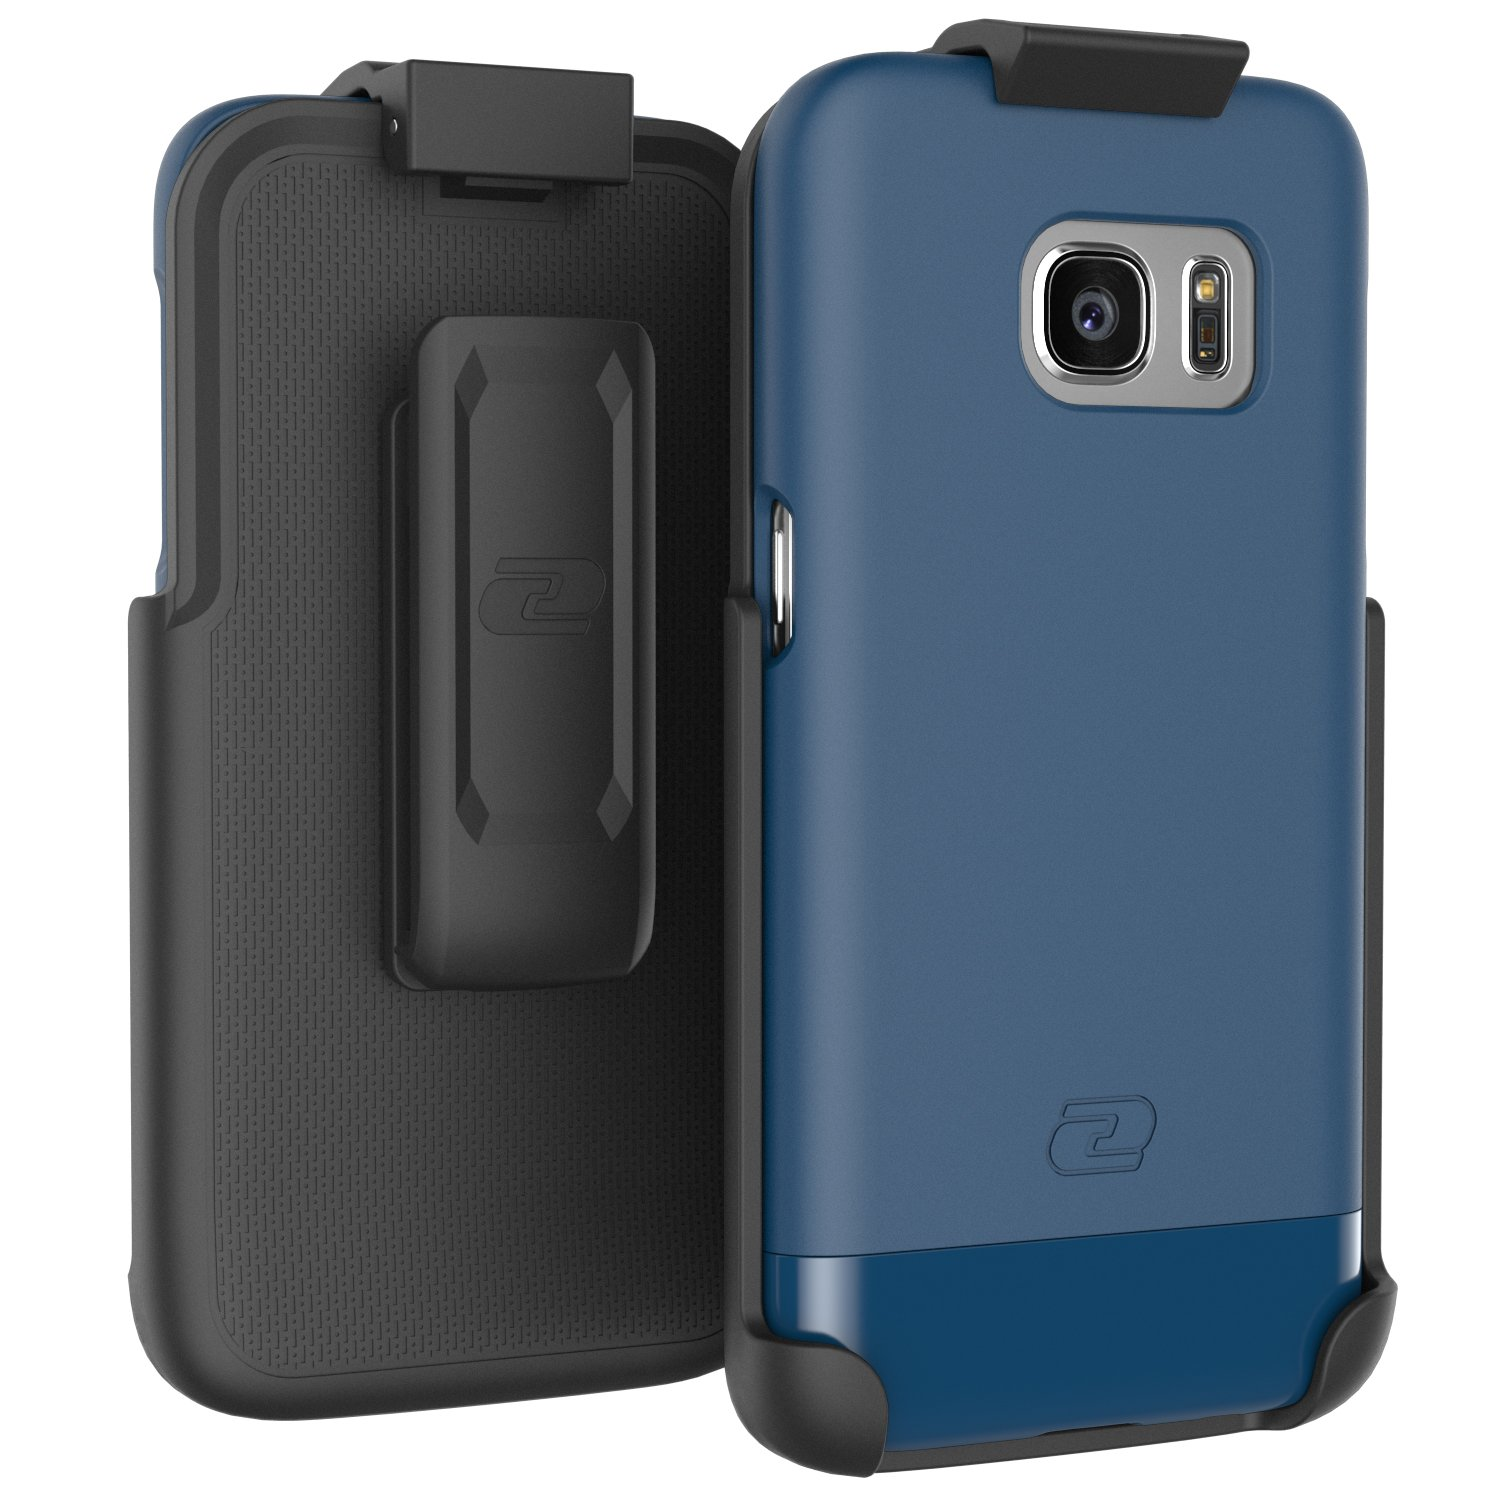 Encased/® Ultra-thin 2016 Ultimate Style Case /& Belt Clip Holster for Samsung Galaxy S7 Deep Blue SlimSHIELD Samsung Galaxy S7 Case Protection